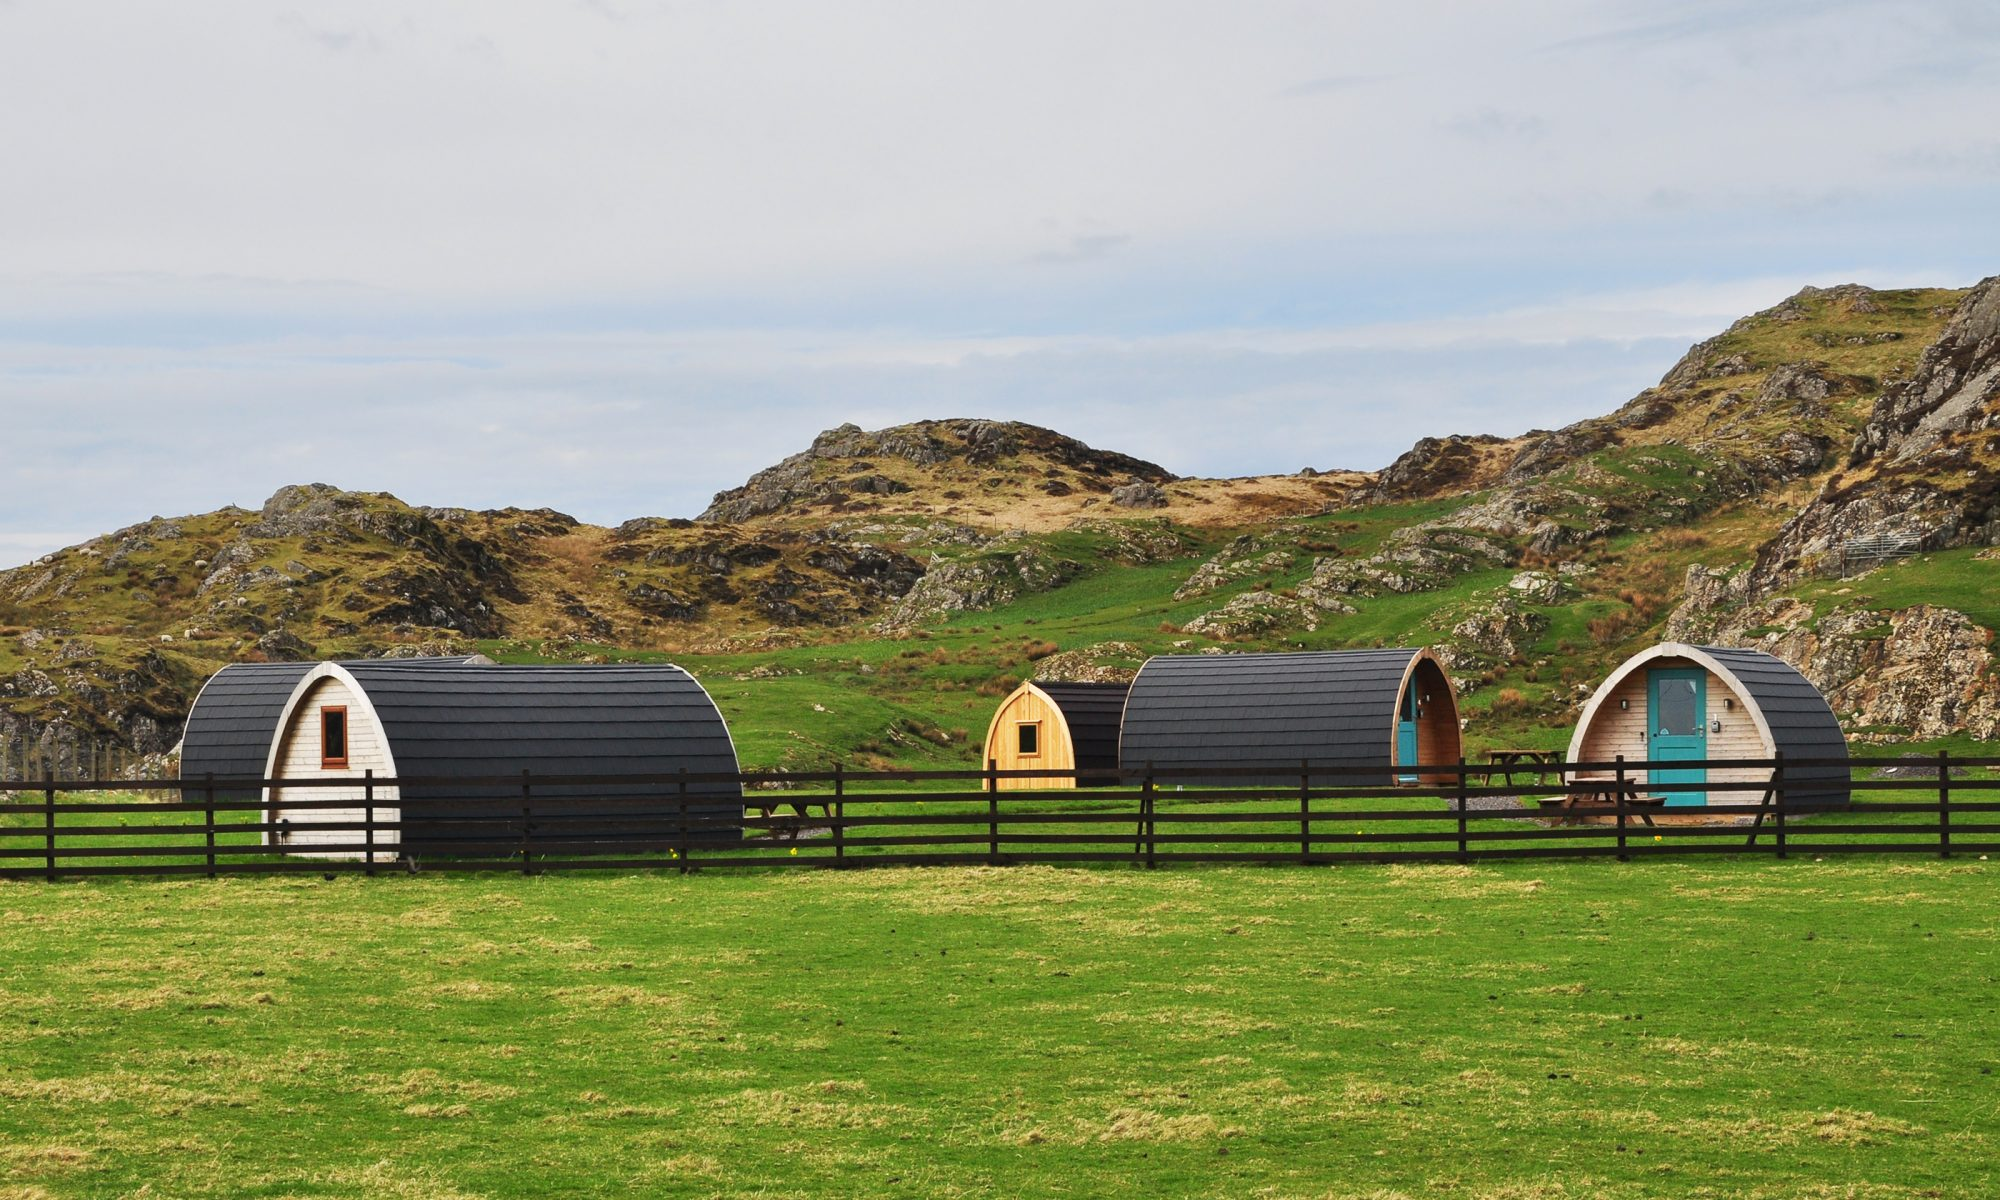 PODS Cornwall glamping pods 2000x1200 - Pods Cornwall - Garden Offices, Dens and Studios